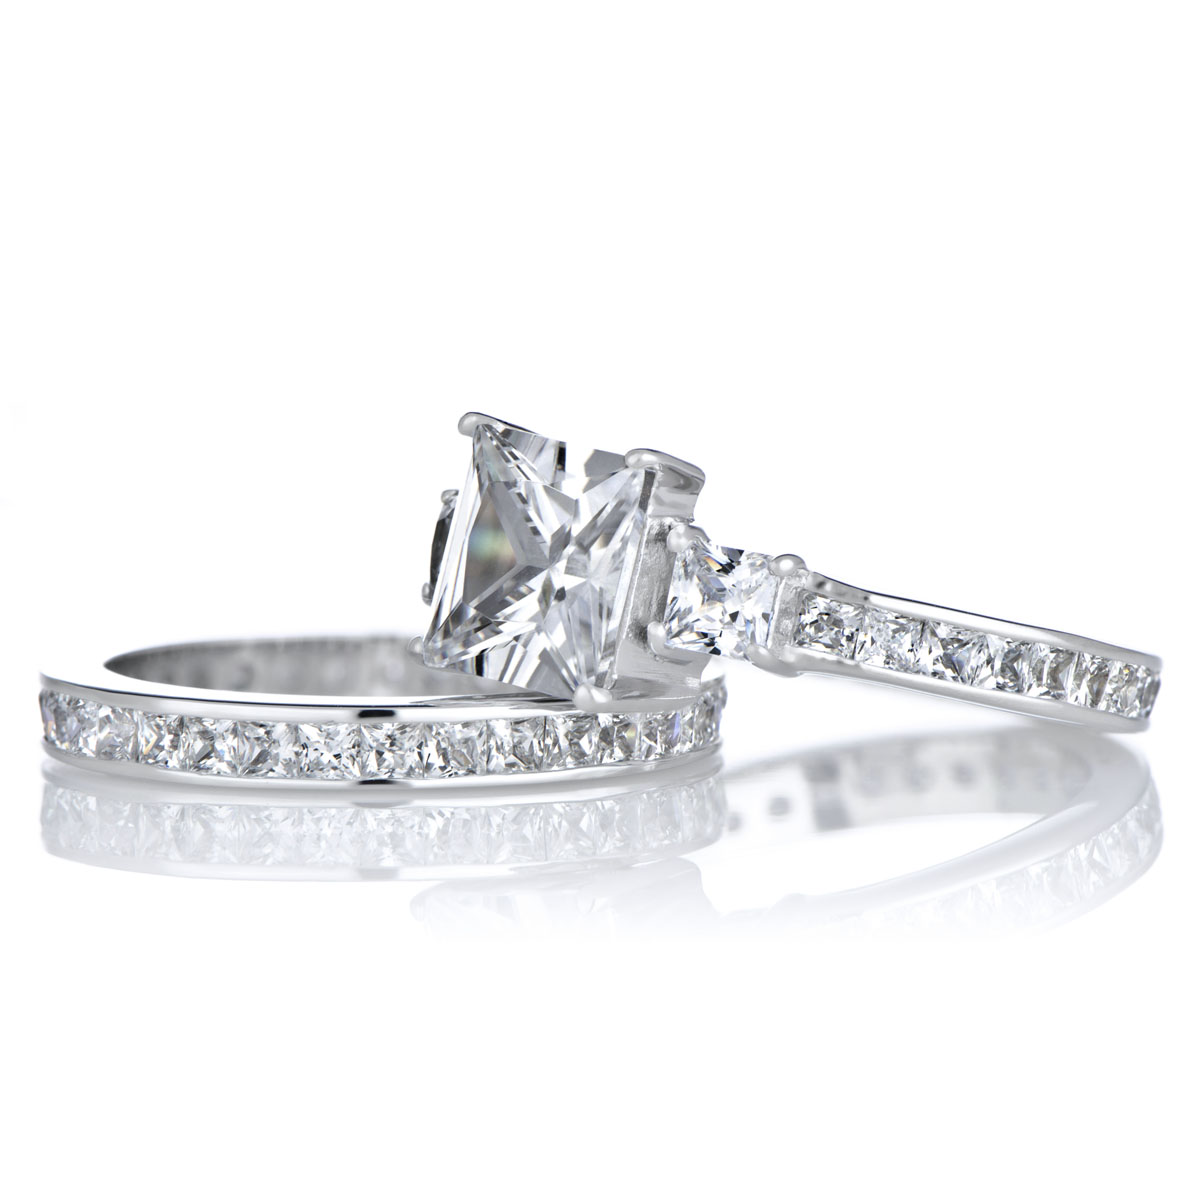 Cara s Engagement Ring Set 2 5 Carat Princess Cut CZ